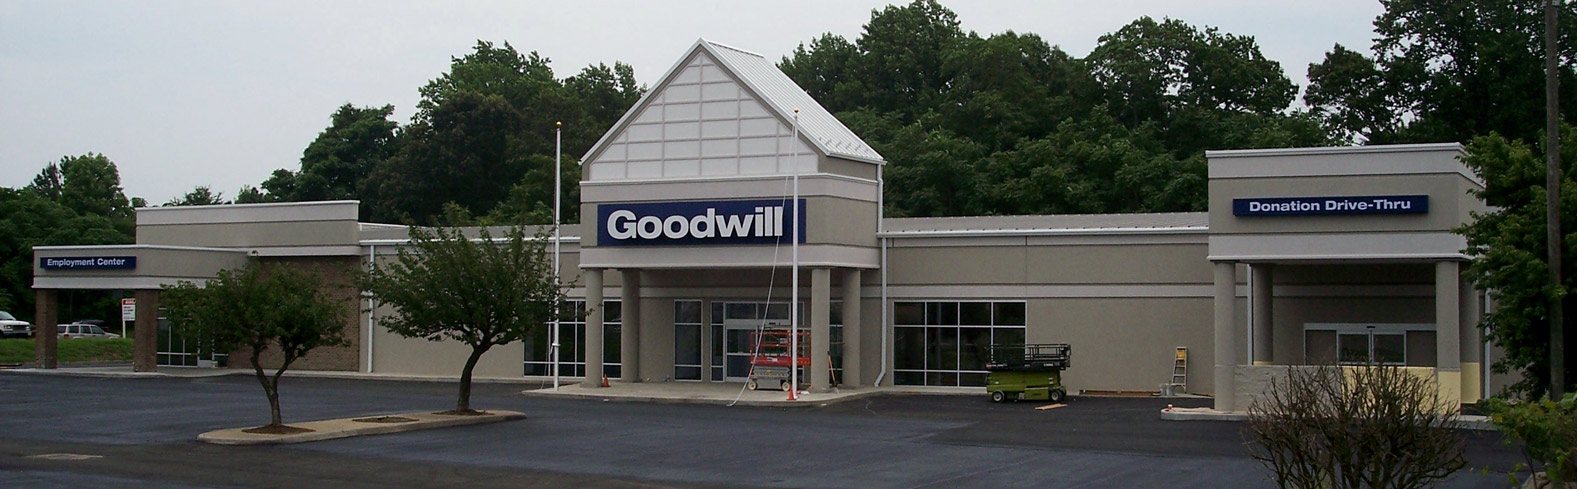 goodwill-main